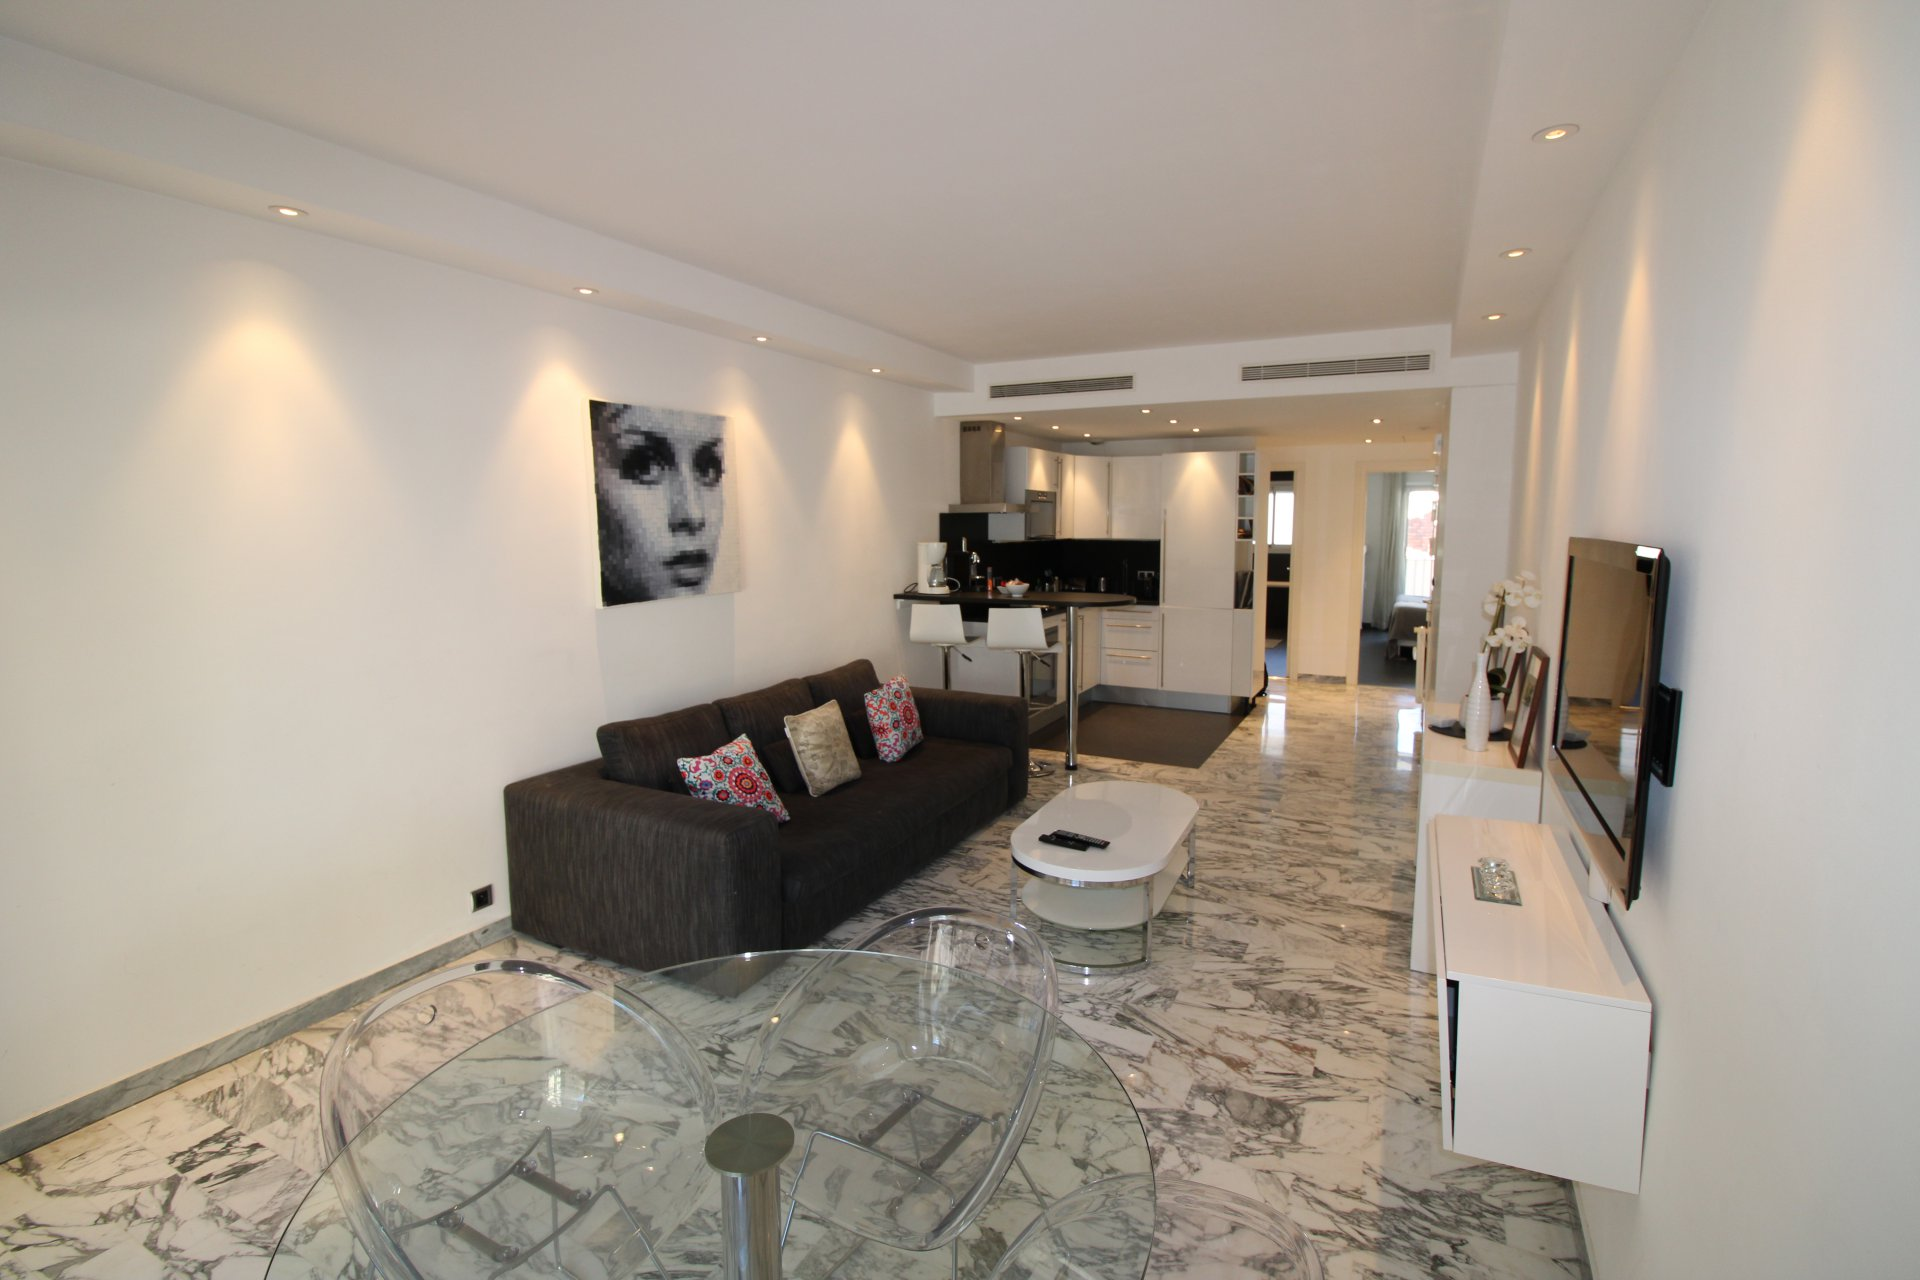 Rental apartment Cannes center, next to Croisette and convention center